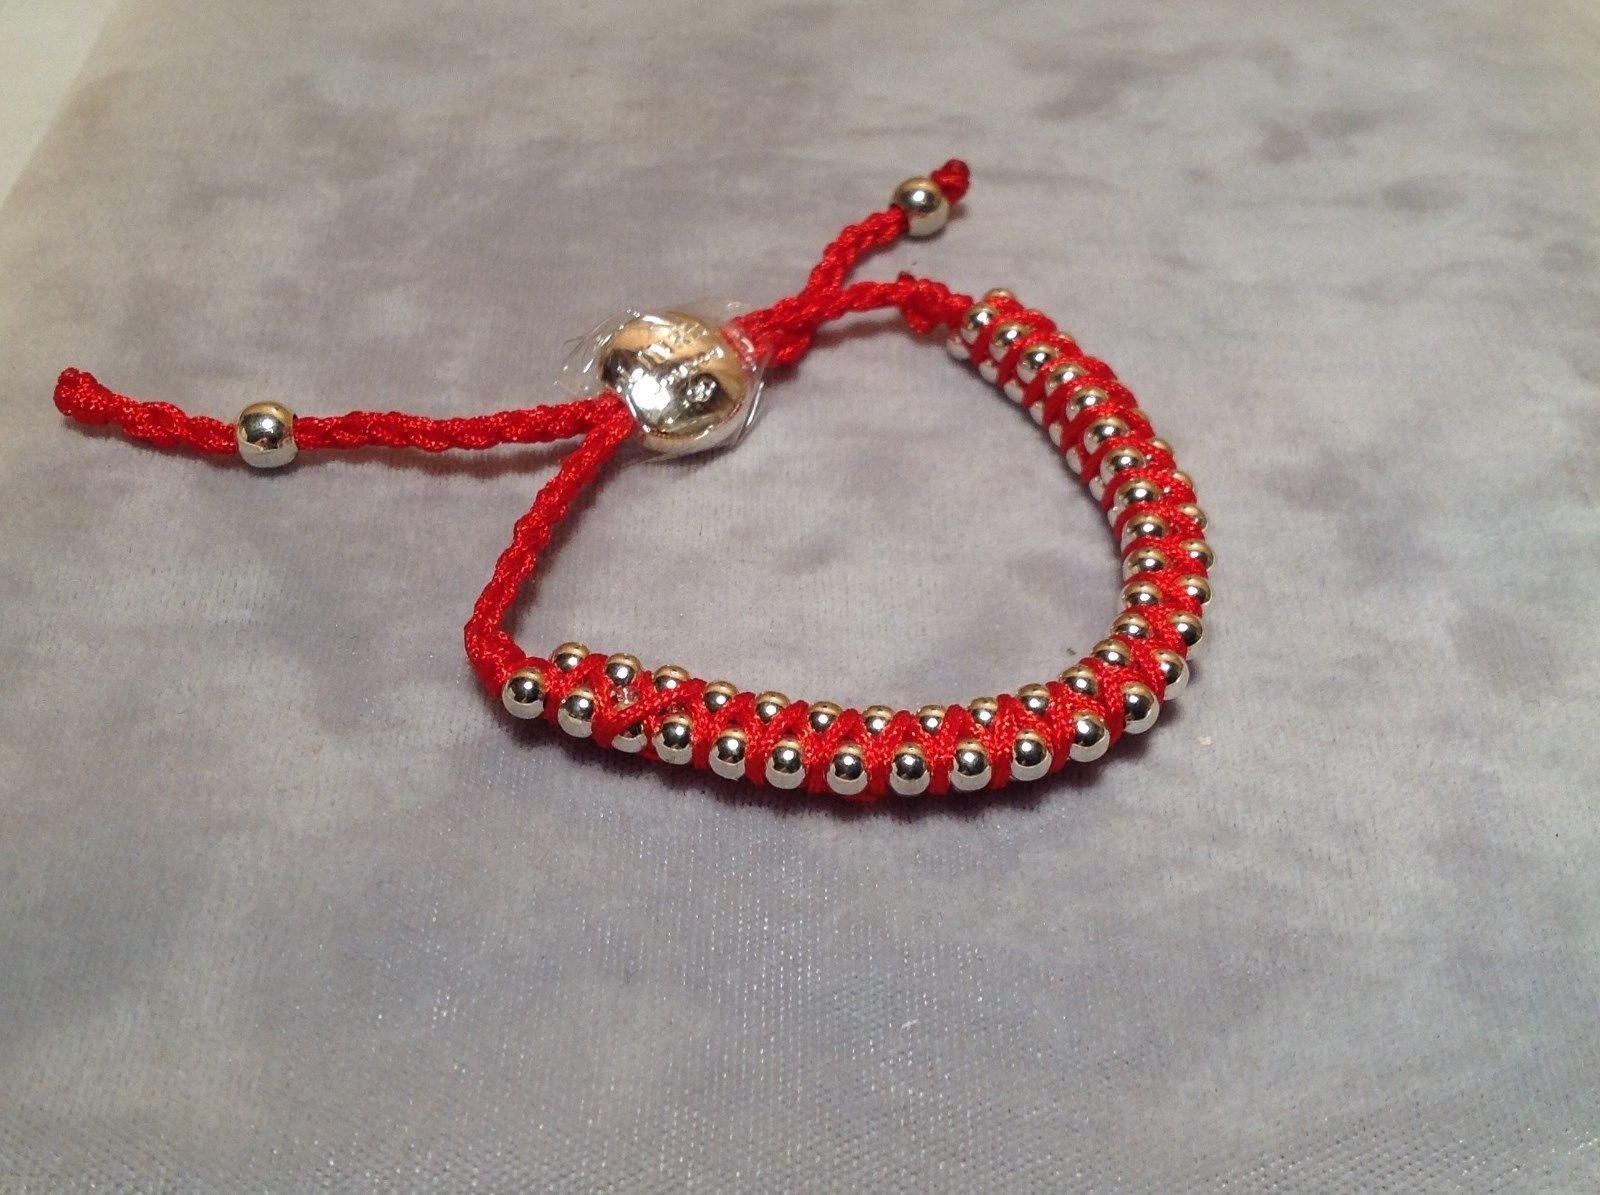 Red Small Tied String Bracelet Sliding Bead for Adjustment